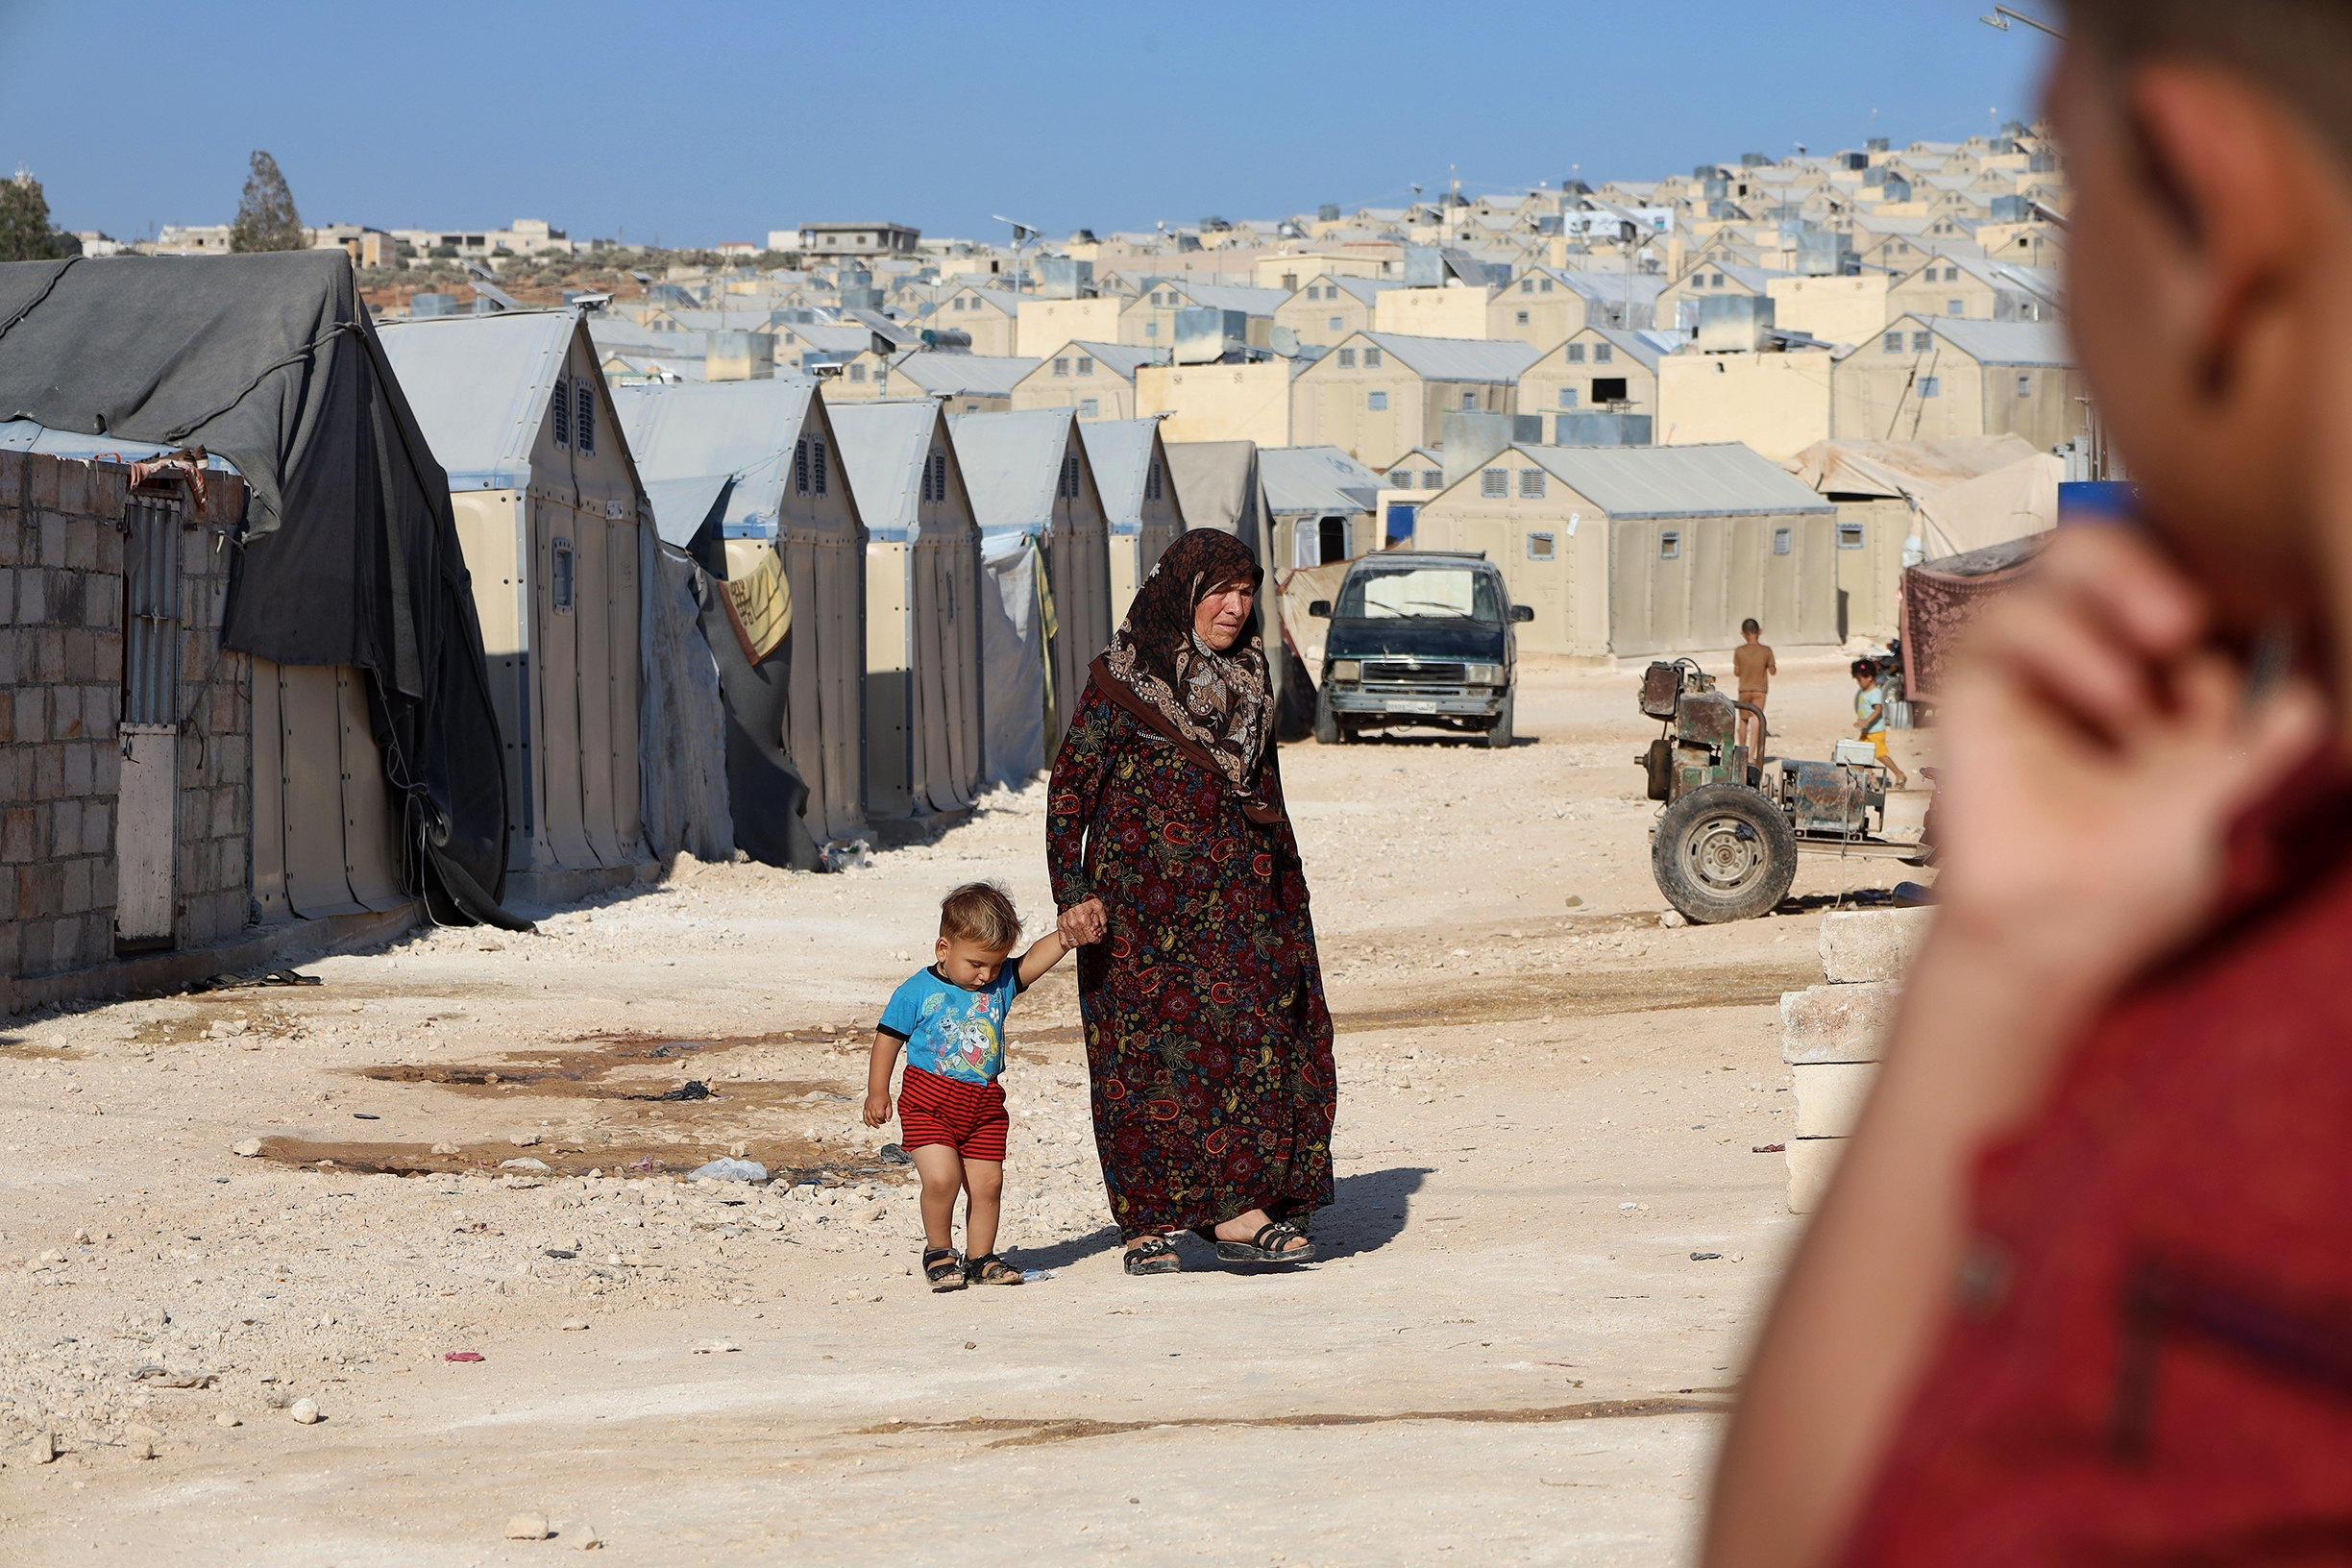 Daily life of displaced Syrians in Kafr Jales camp near the city of Idlib, northwest Syria, 2021